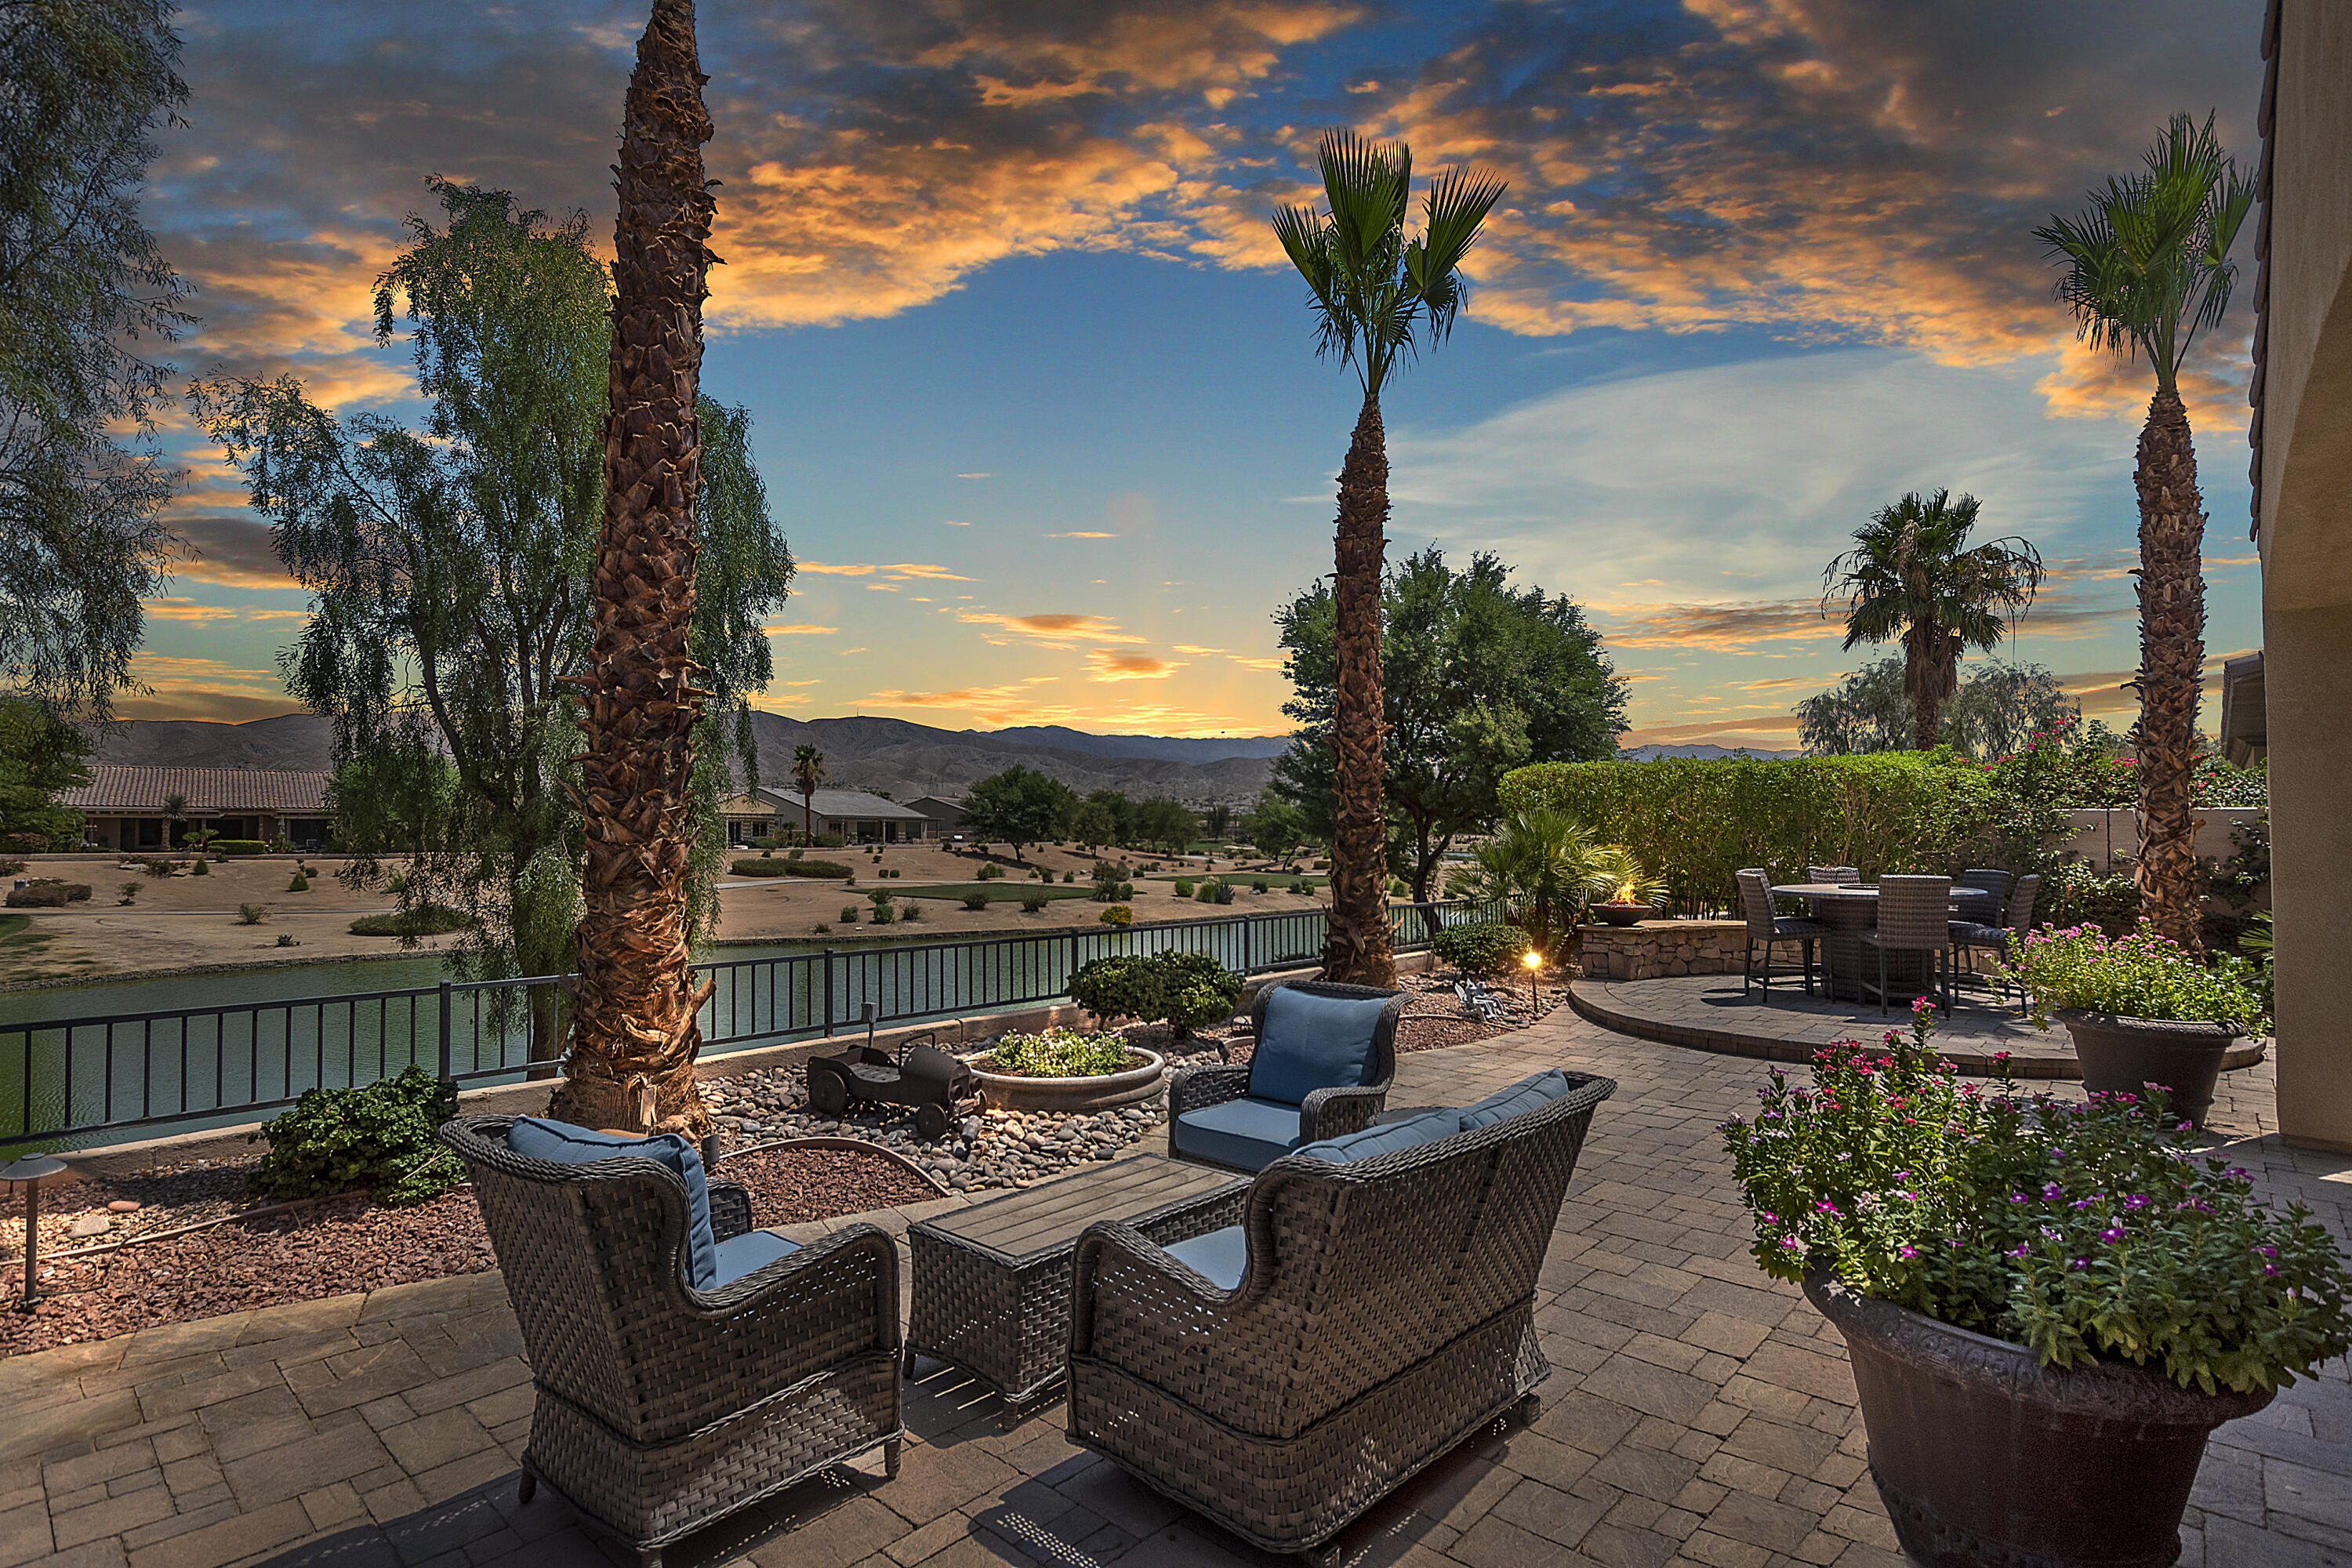 Yeah, yeah, yeah we agents always say, 'This is THE ONE you've been waiting for' and repetition, IT'S TRUE! This is an exceptional property. The trifecta, Golf Course, Lake, and Mountain Views! Love the Life, Live the Dream is my motto. An Avelino model has an open floor plan, 2BR/2BA plus a den. This one has many upgrades. I esp. LOVE the brick cobblestone patios in both the front & back yards ~ relaxing sound of trickling fountains ~ and ample seating choices, both covered and unshaded depending upon your mood and the time of day. The beveled glass inlay front door filters light in beautiful patterns. 'Cheery', 'immaculate', 'worthy' are all fitting adjectives. ('Worthy' is for you!) Quality workmanship on the wall-to-wall great room book/display shelving adds storage, interest, and an overall coziness to the room. Some furnishings available to get you started in your new home... ABSOLUTELY will not last. Take a break from your BBQ and come see for yourself. SCSH is the best value for country club amenities. Every imaginable interests - over 100 jam-packed clubs with activities galore. And golf/tennis/pickle ball... are all excellent ways to meet instant friends with shared interests. You will feel right at home in no time and wonder why you didn't do this sooner. Promise!